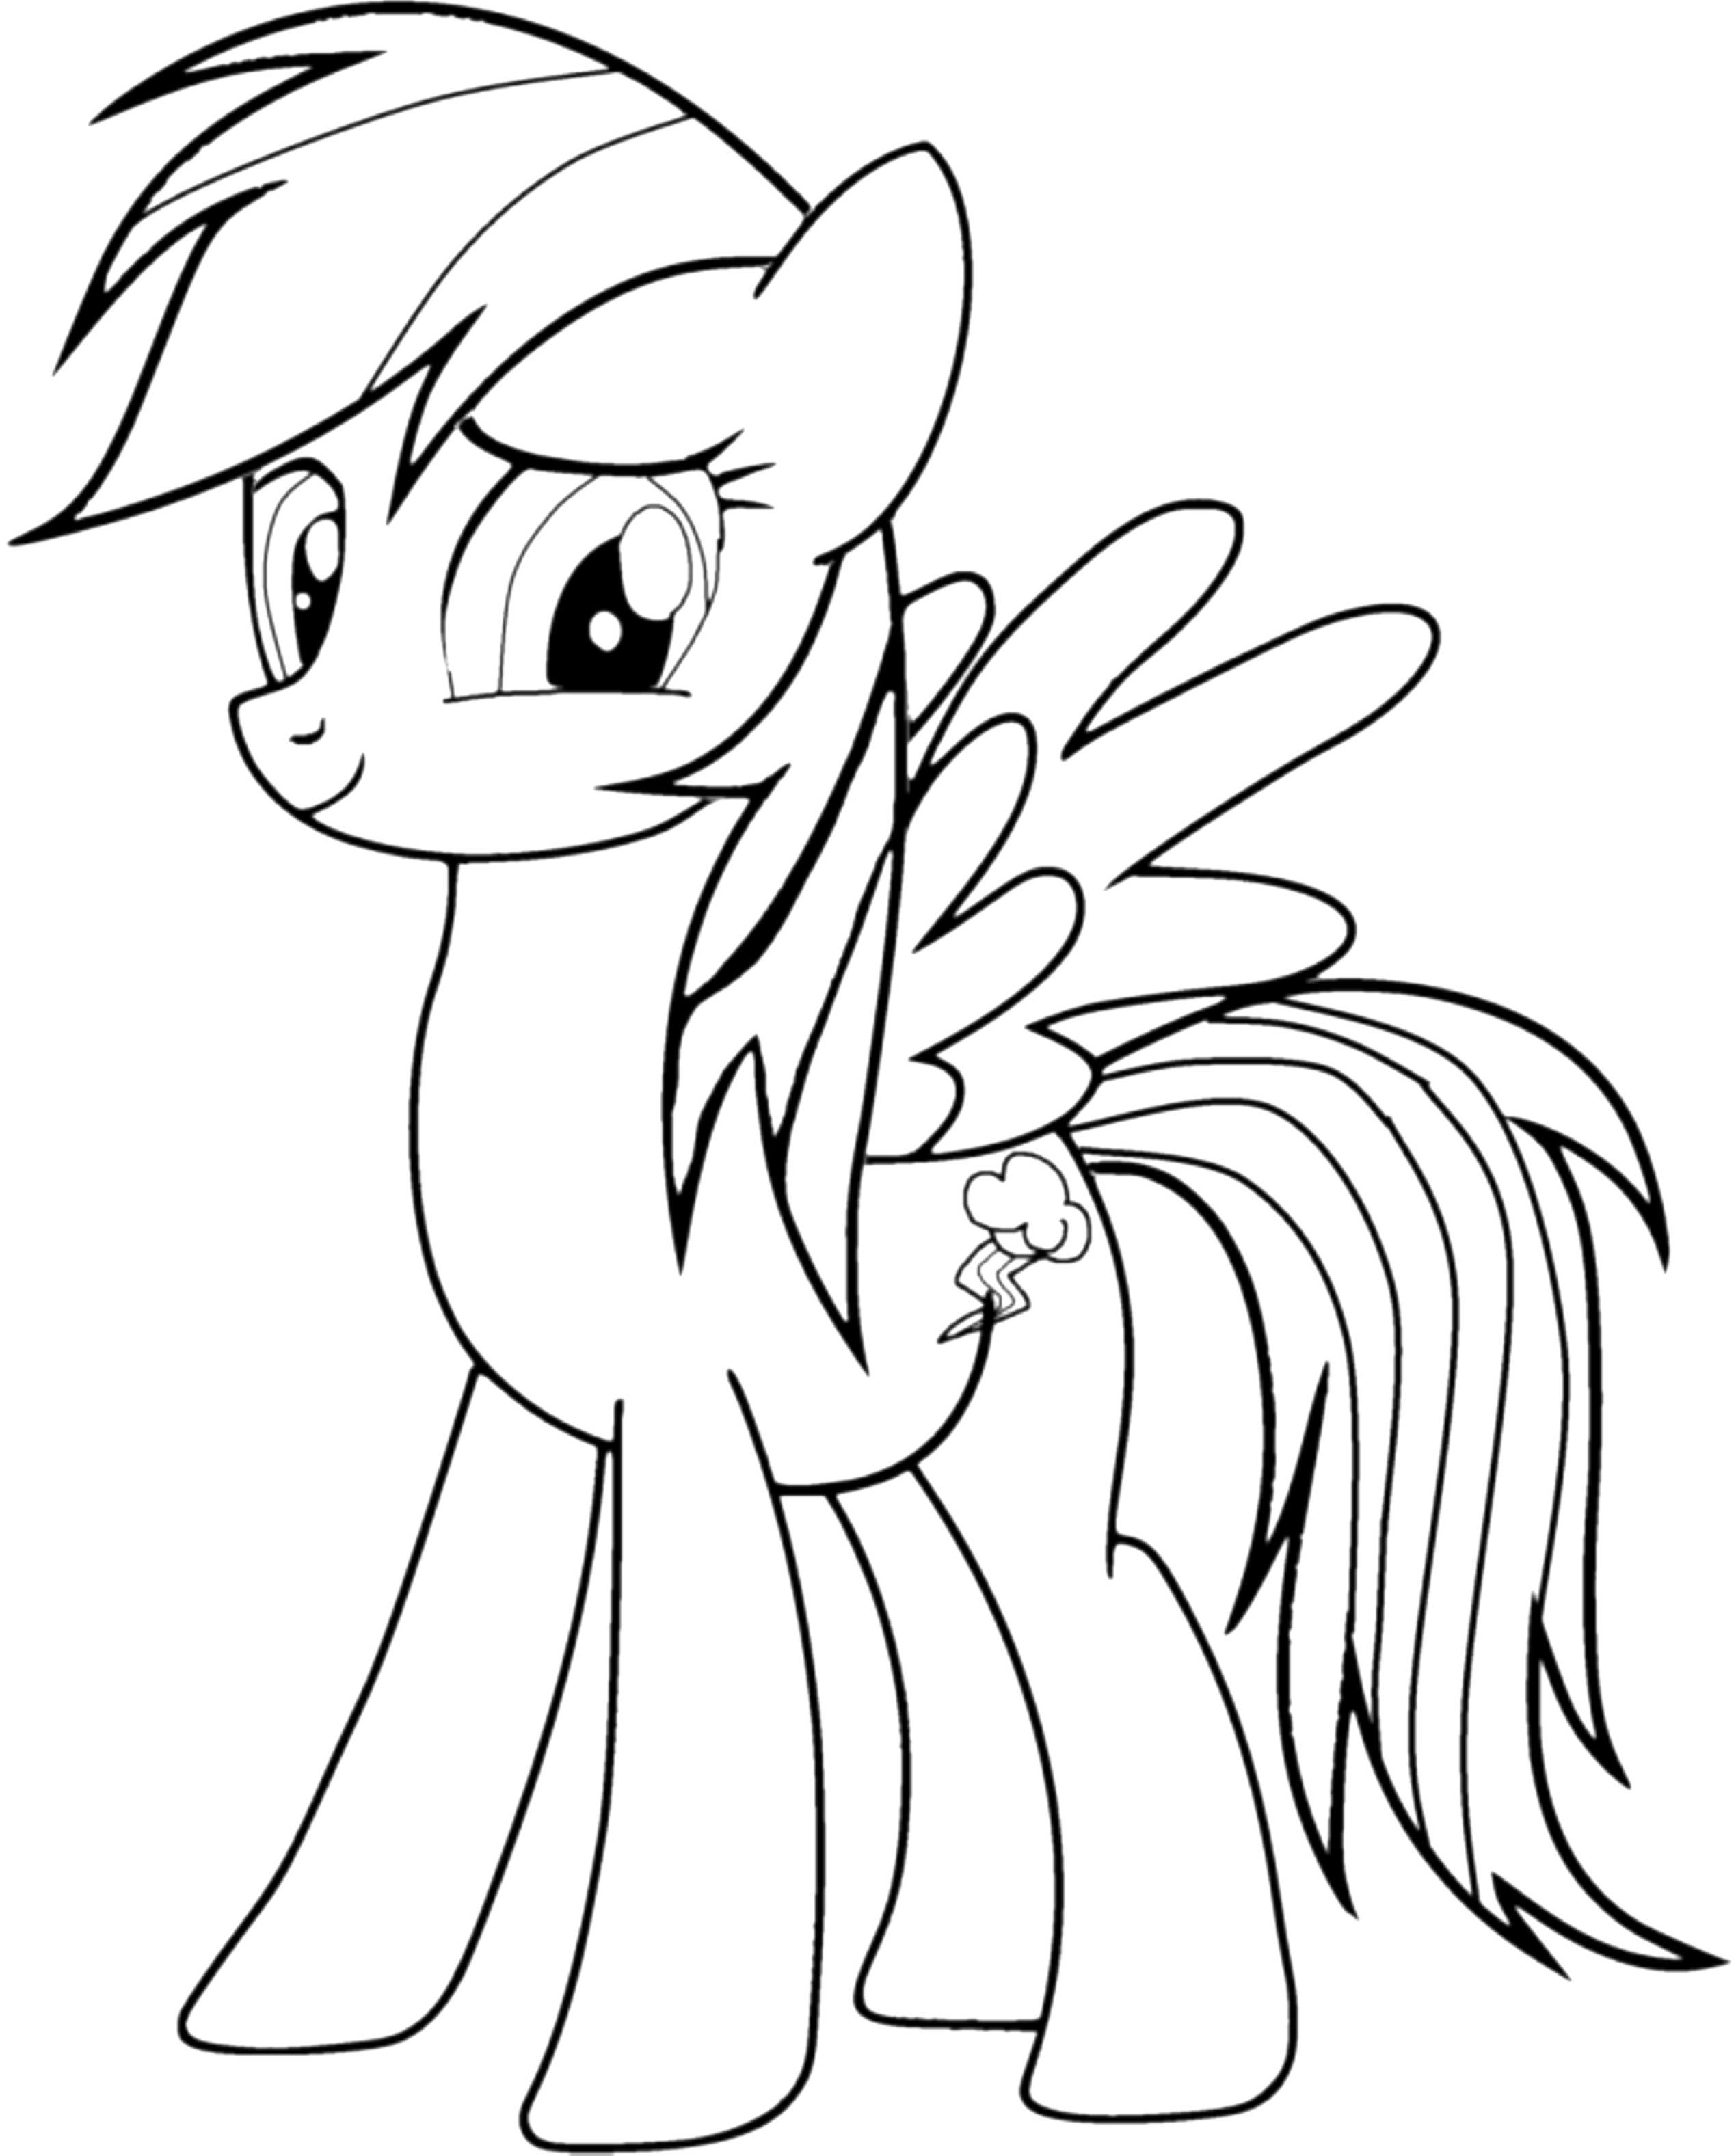 Cute My Little Pony Coloring Pages Rainbow Dash - Printable Kids ...